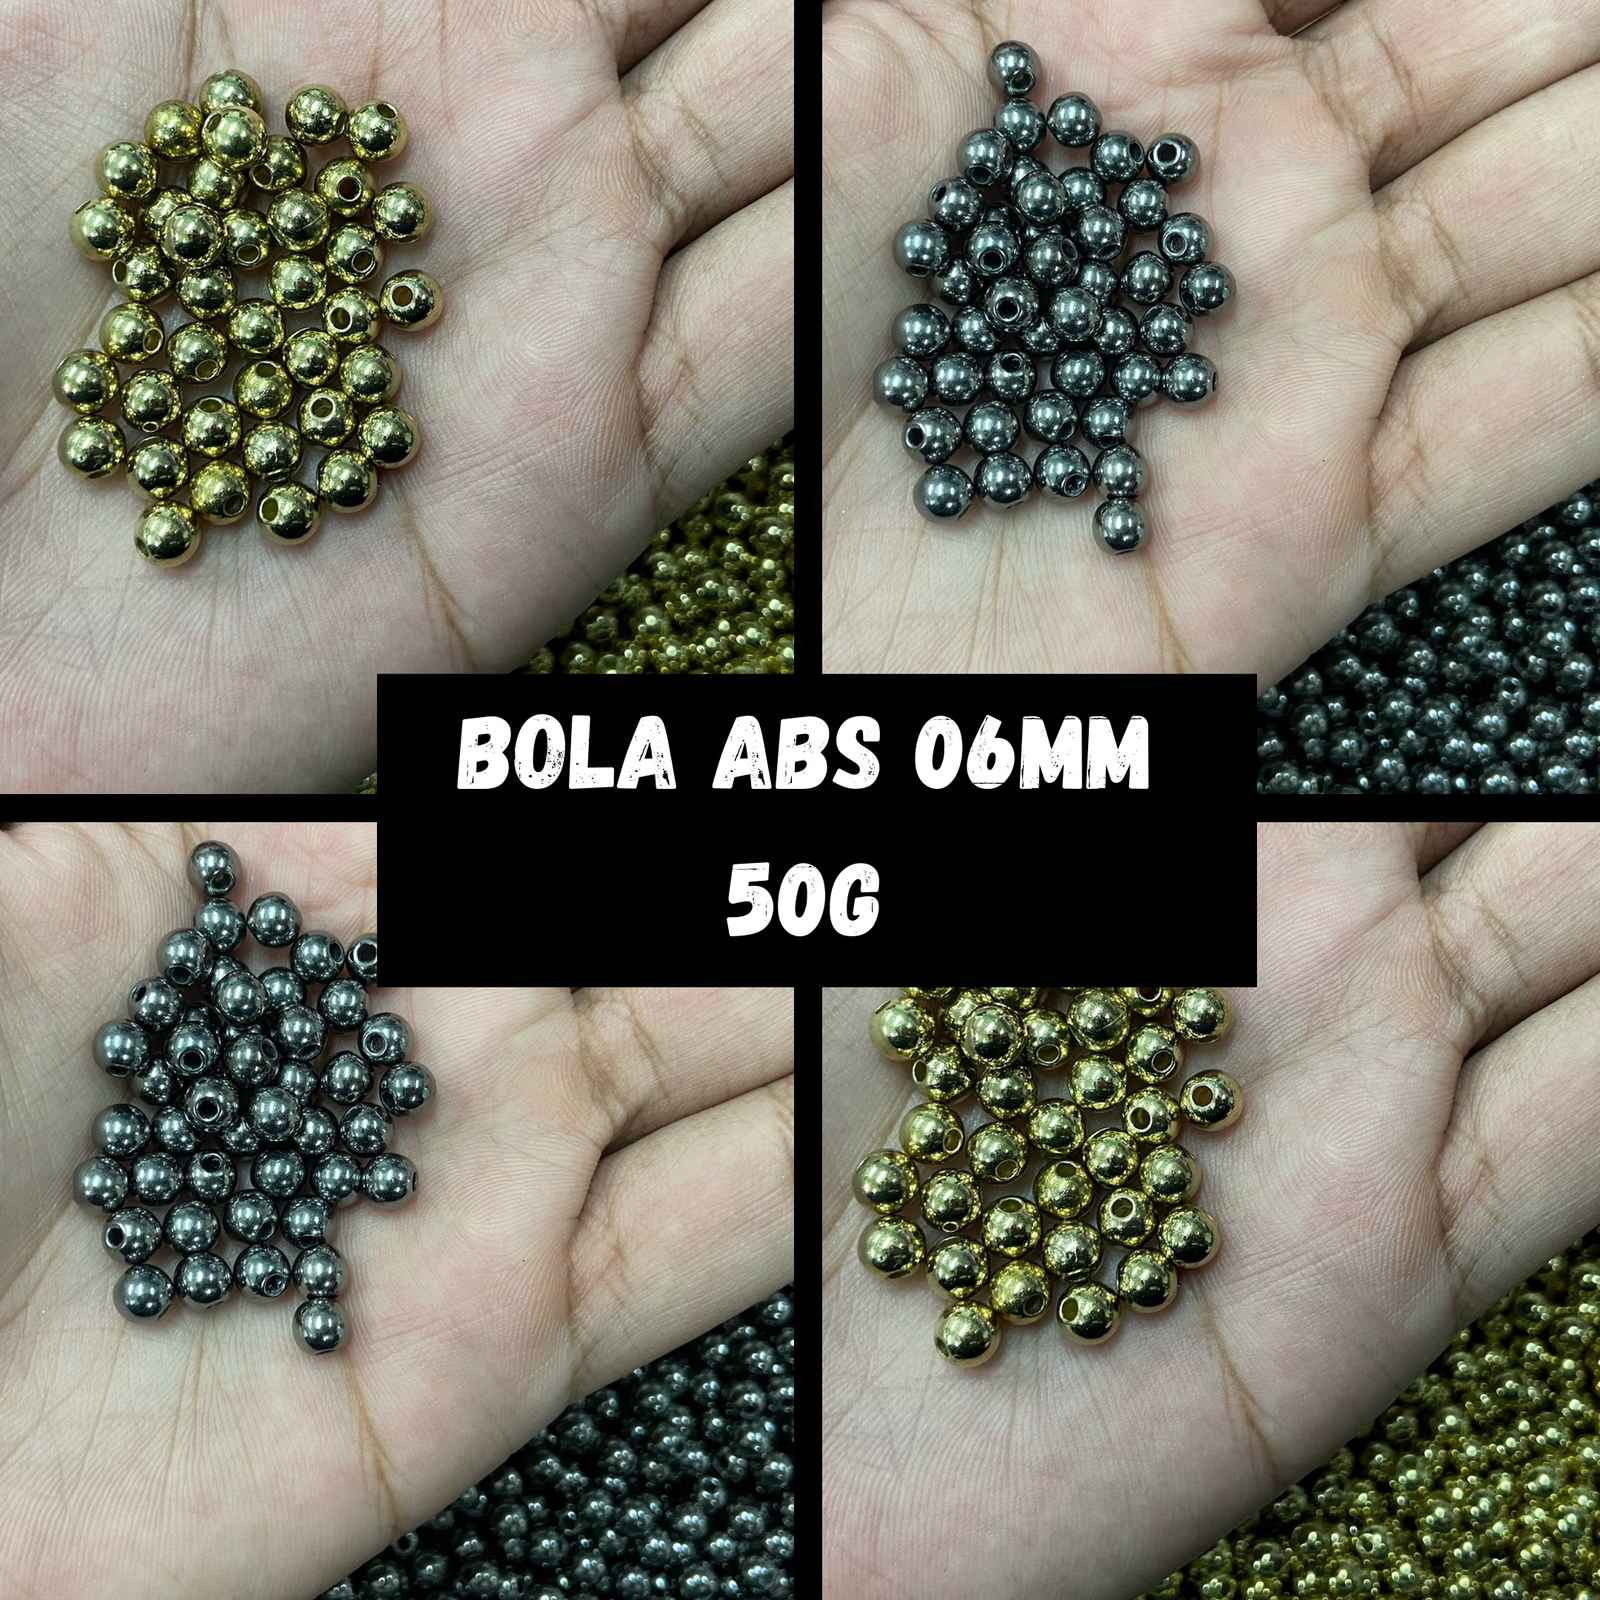 Bola ABS 06mm - 50g